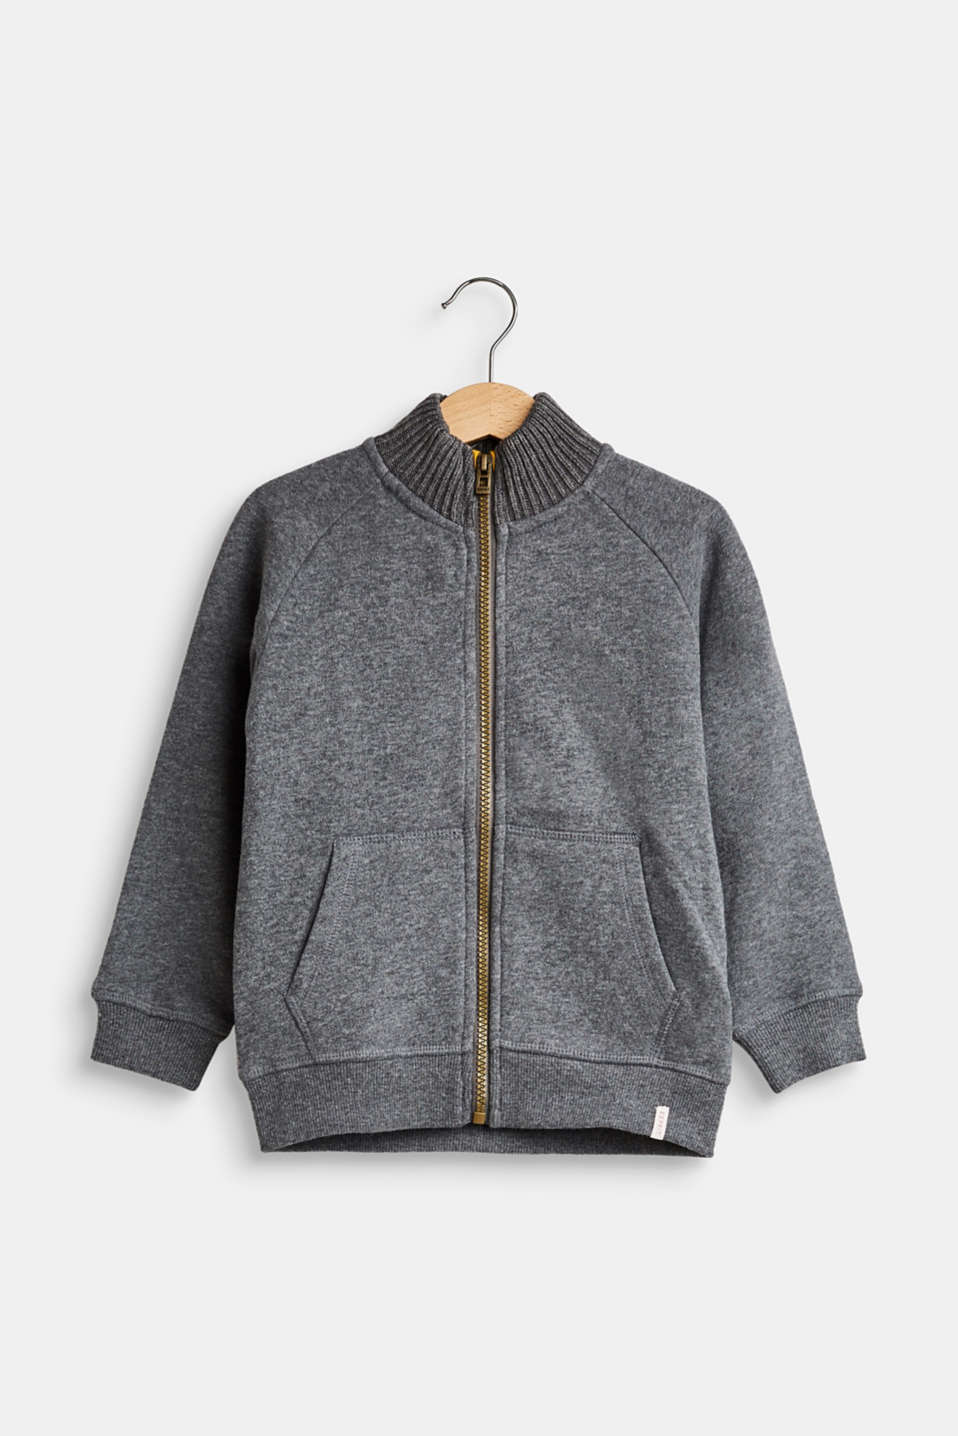 Esprit - Sweatshirt fabric jacket with a zip, 100% cotton